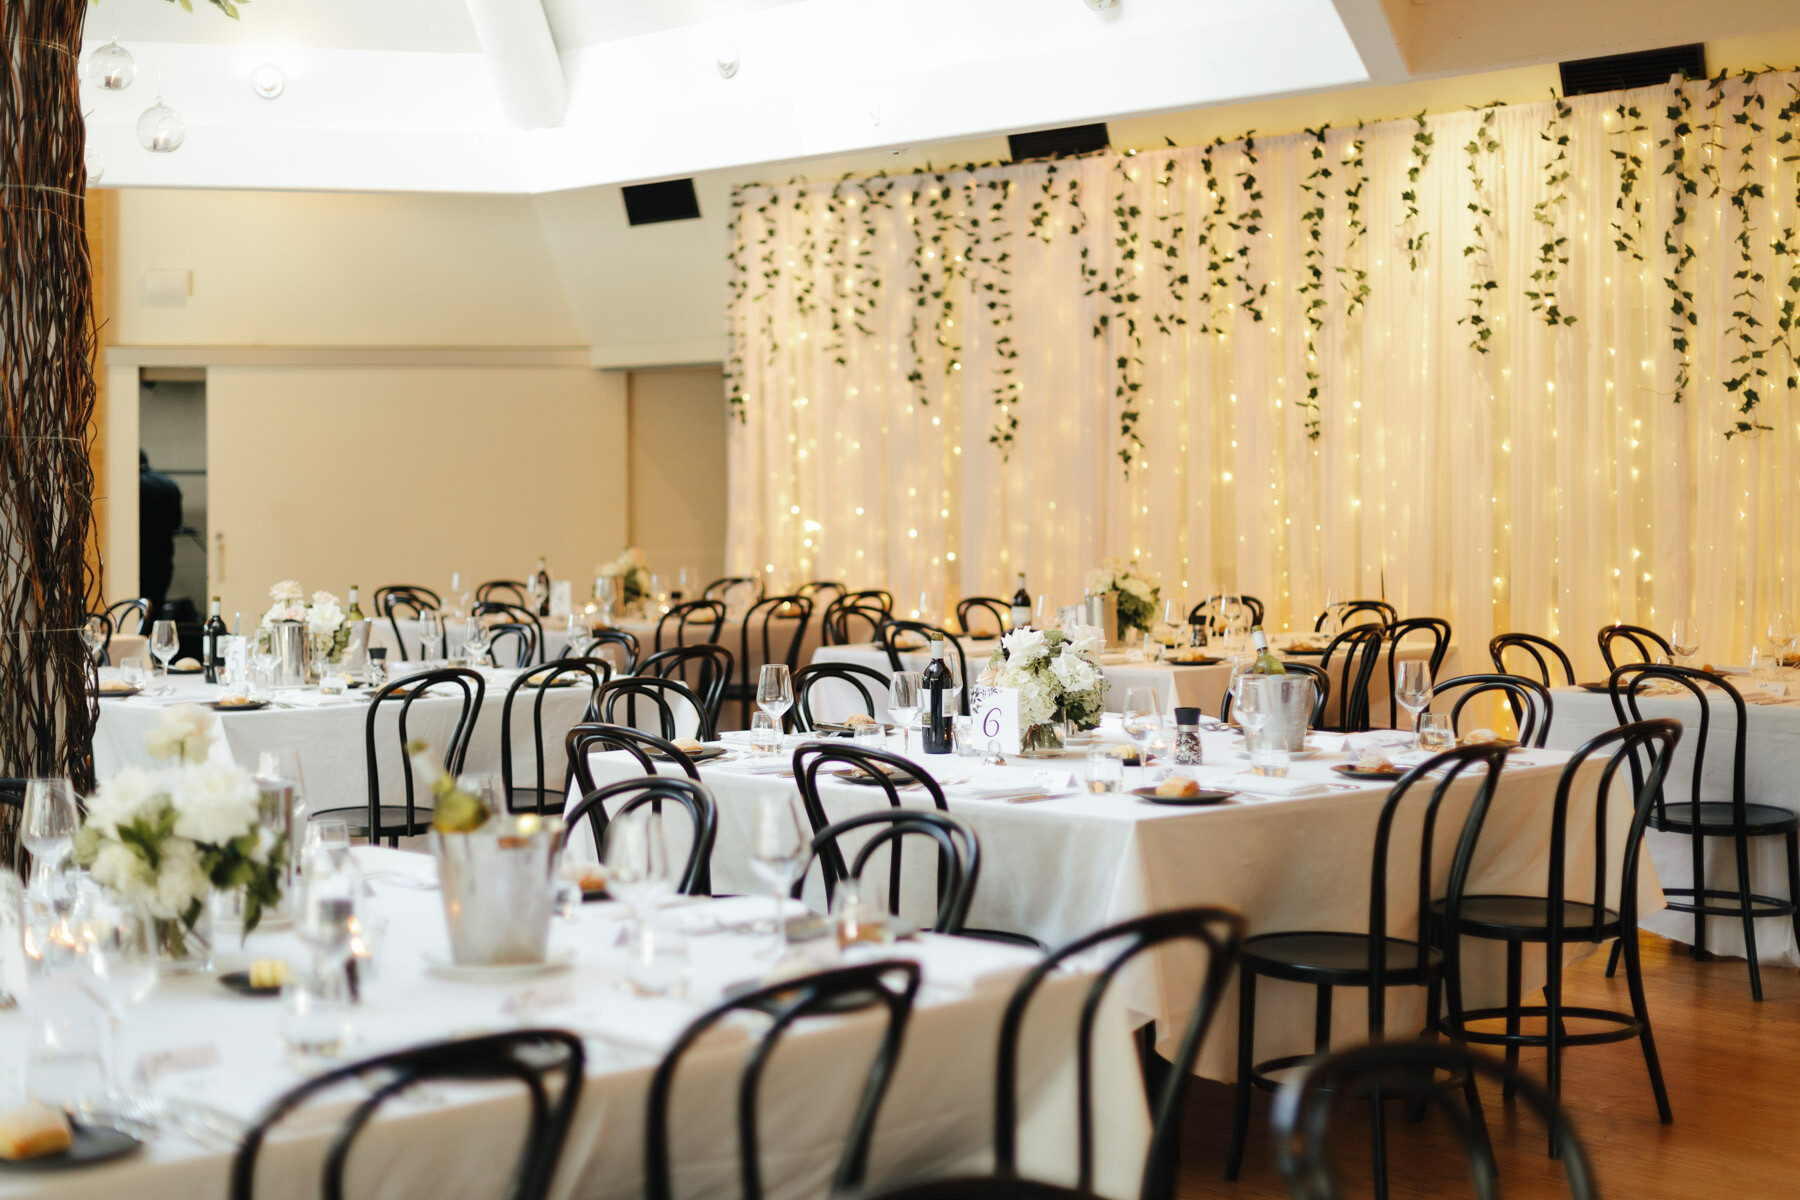 How much time should be between the wedding ceremony and reception?